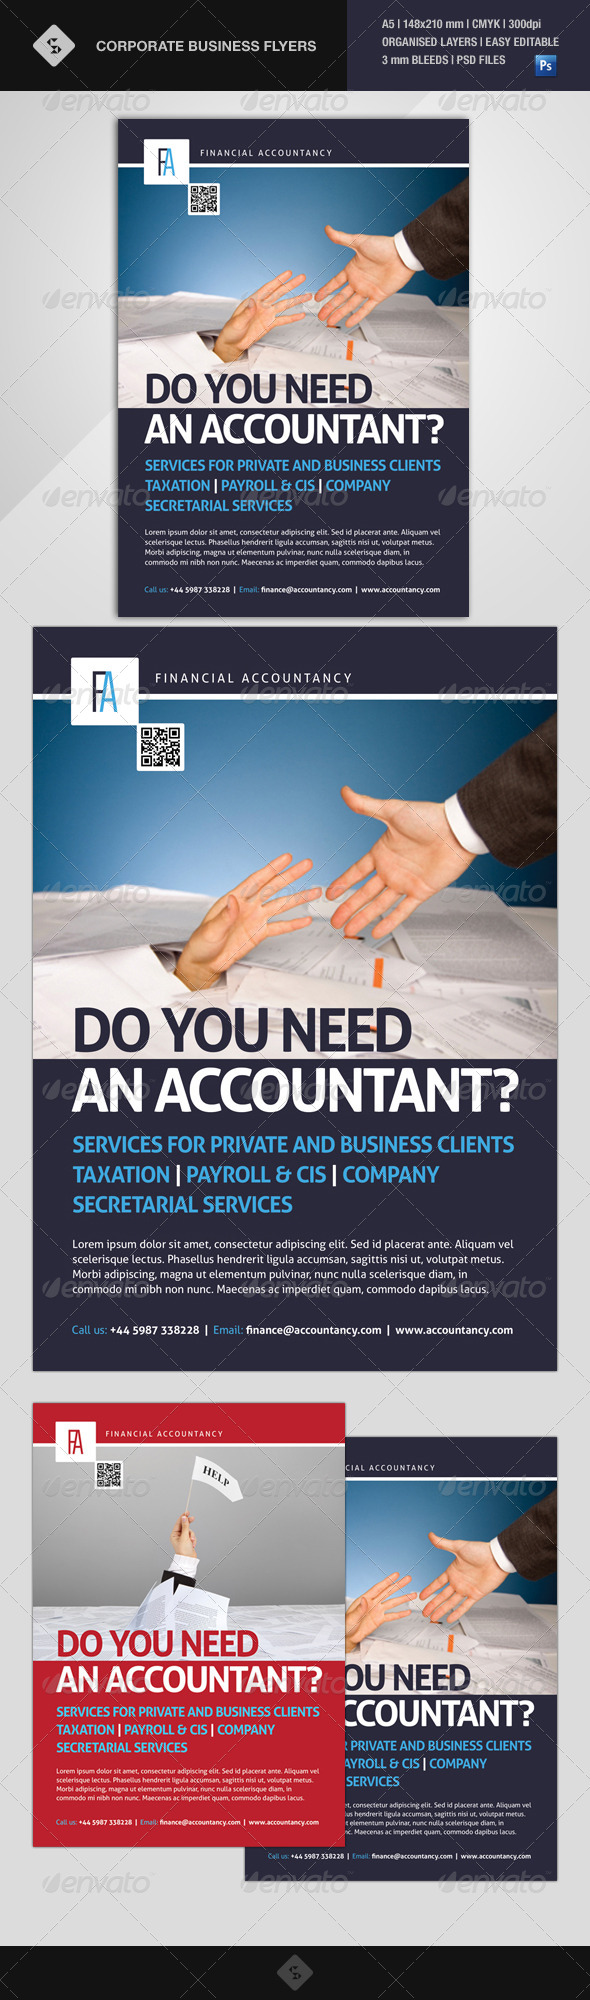 GraphicRiver Corporate Business Flyer Financial Accountancy 7988971